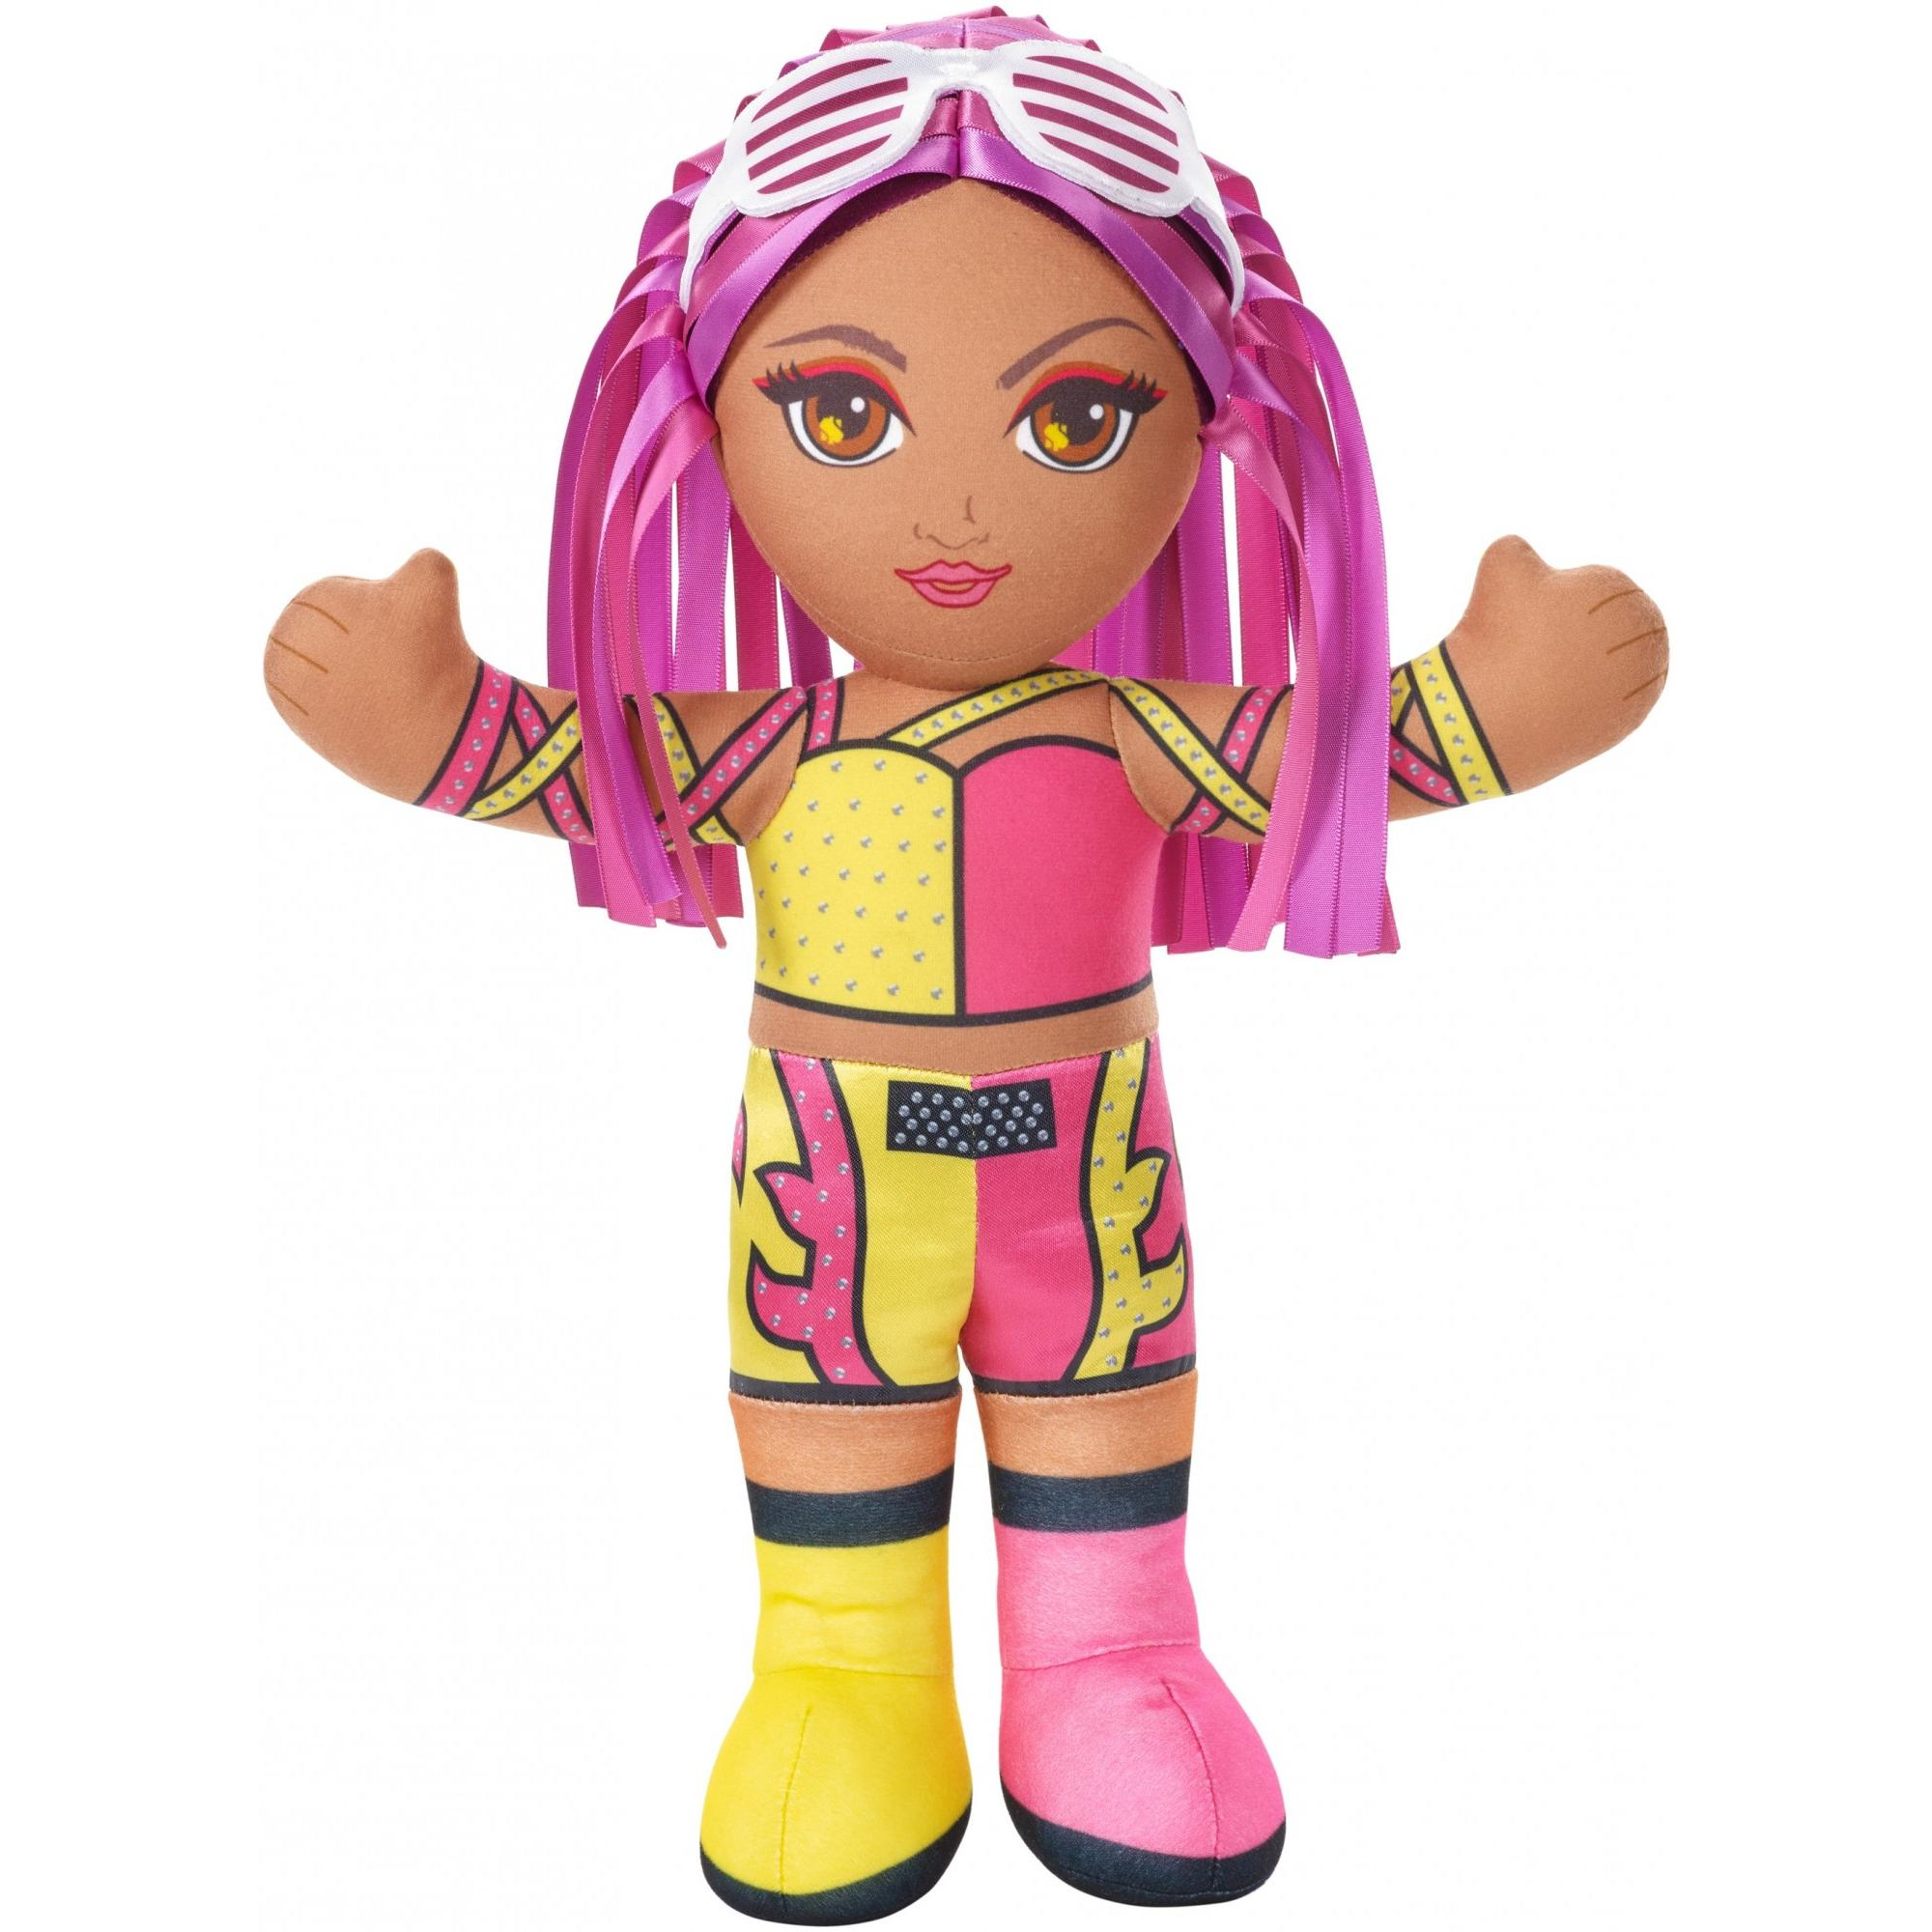 WWE Tag Team Superstars Sasha Banks Doll